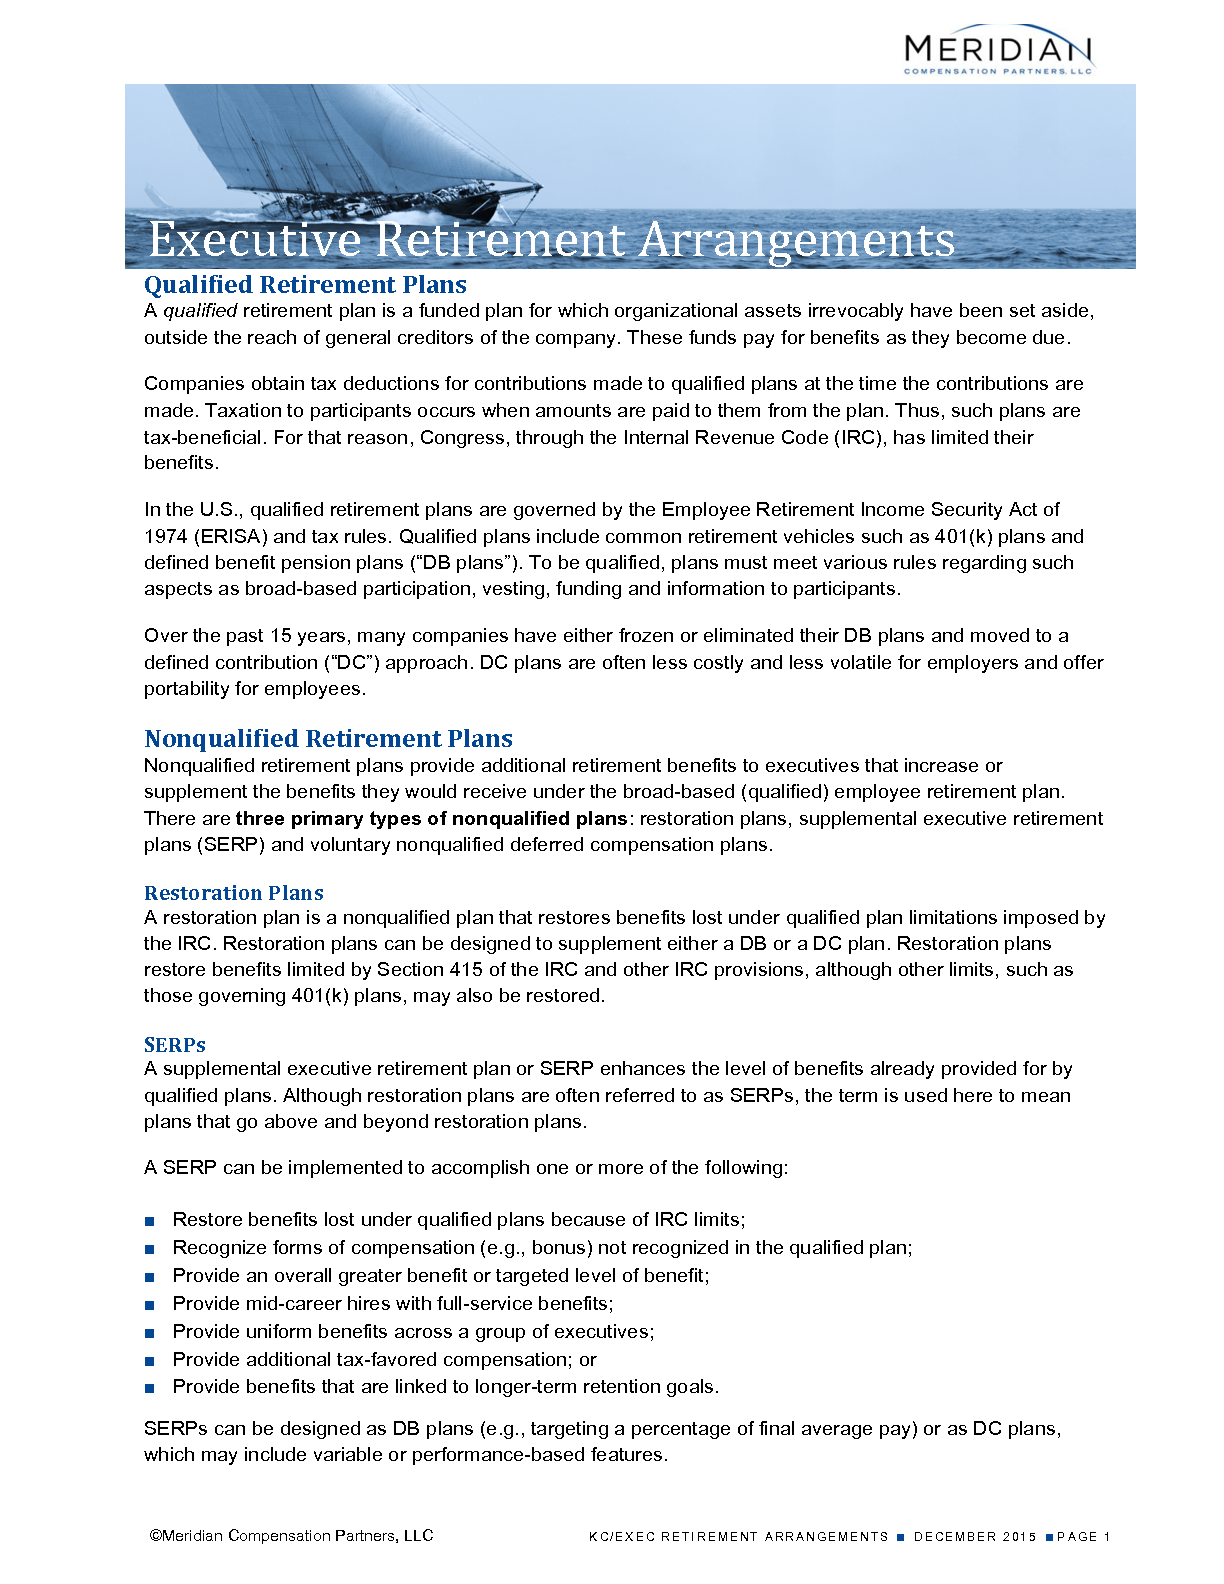 Executive Retirement Arrangements (PDF)